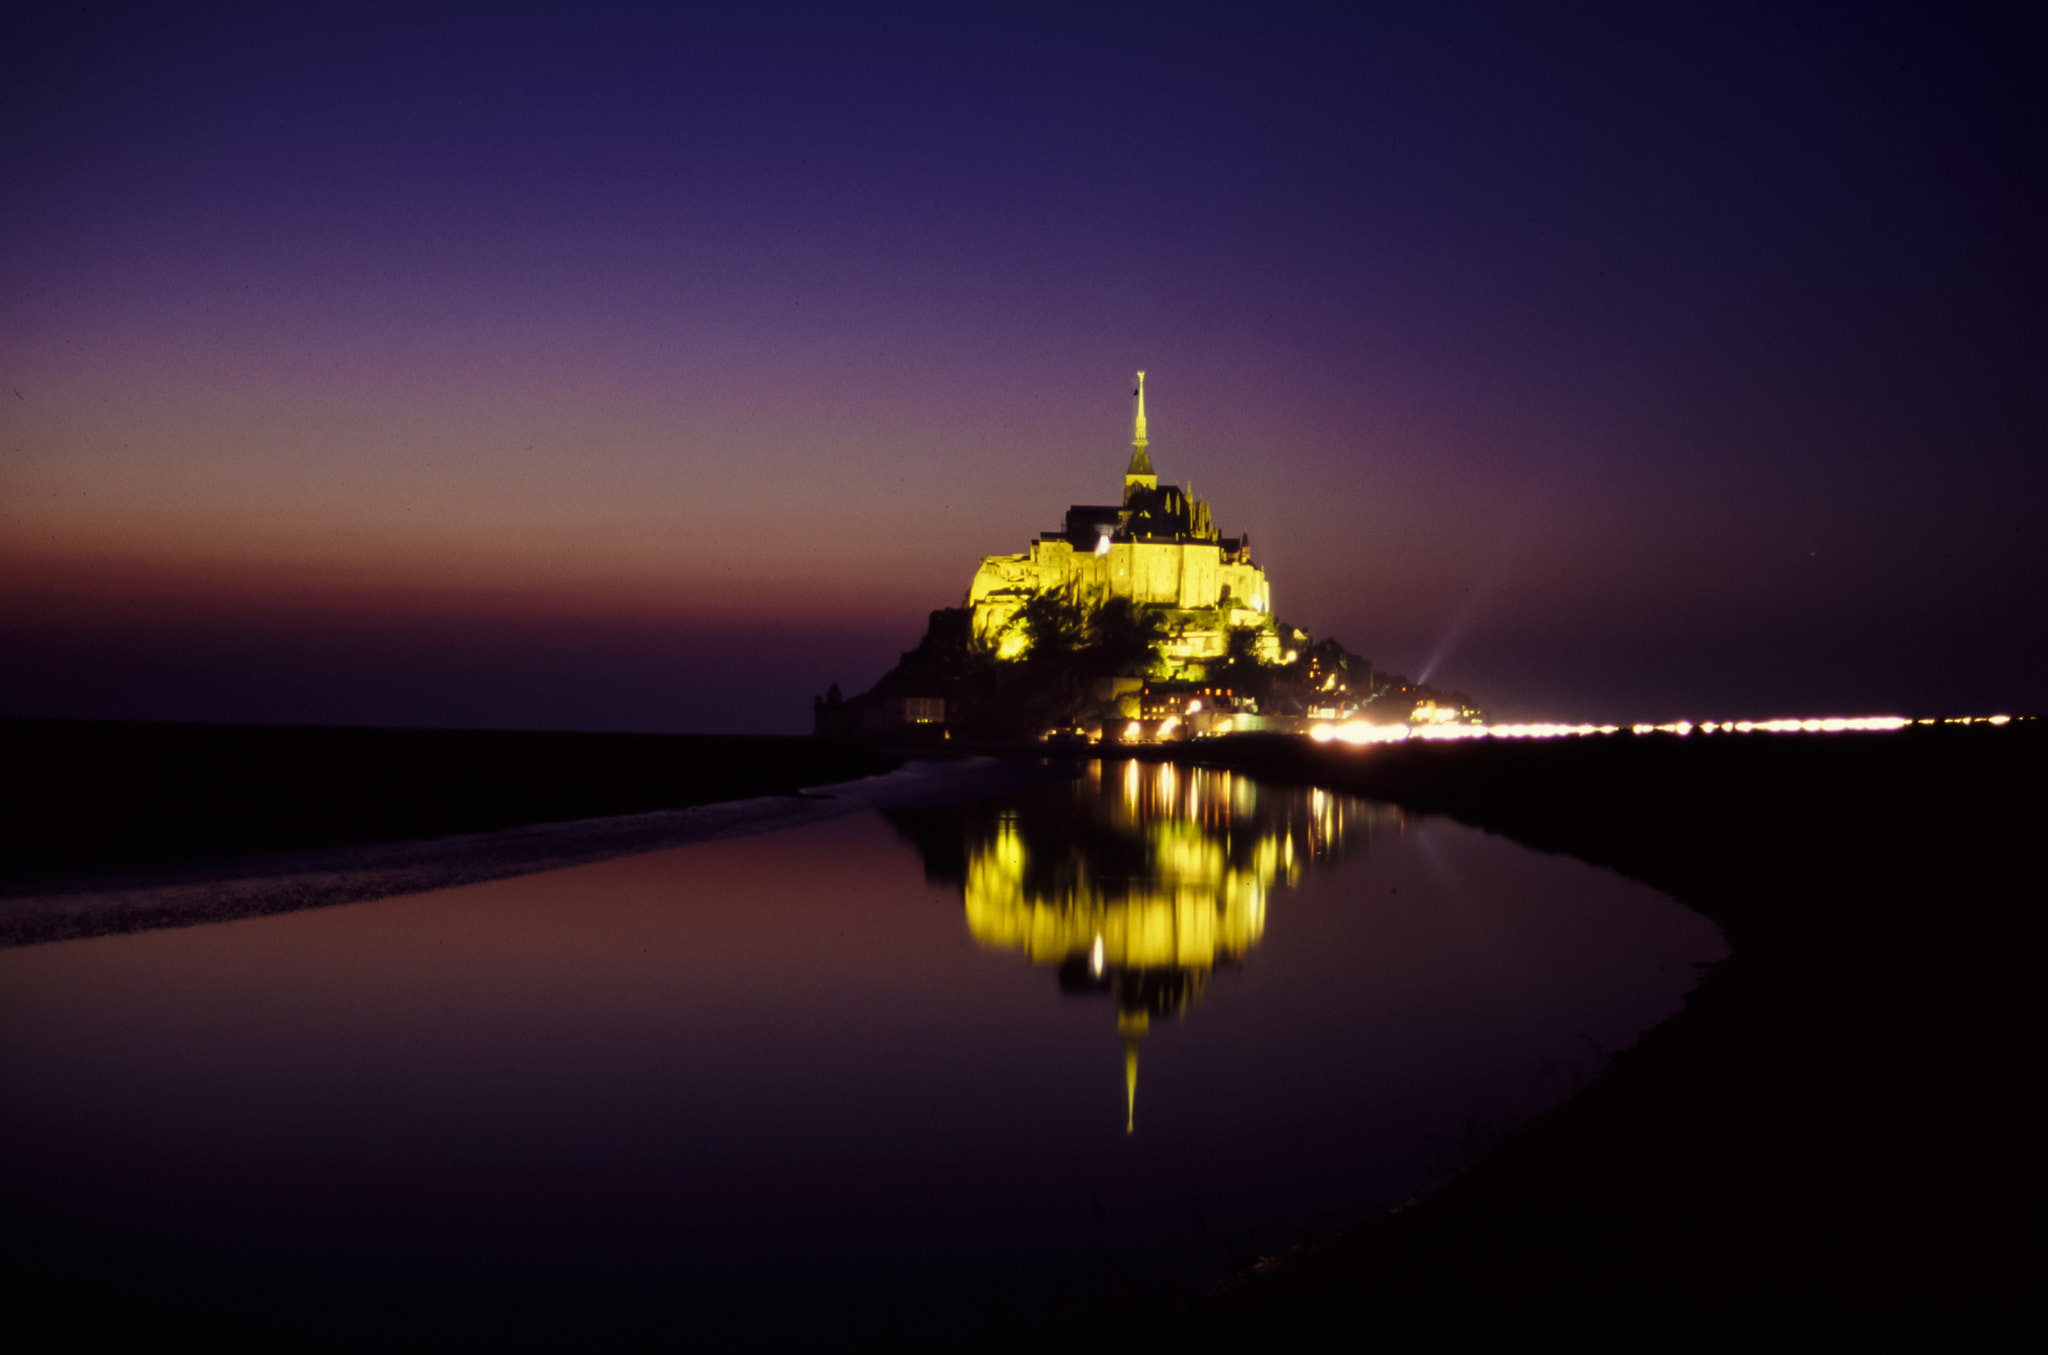 Photograph Le Mont-Saint-Michel by Joan Carbonell Tapiolas on 500px